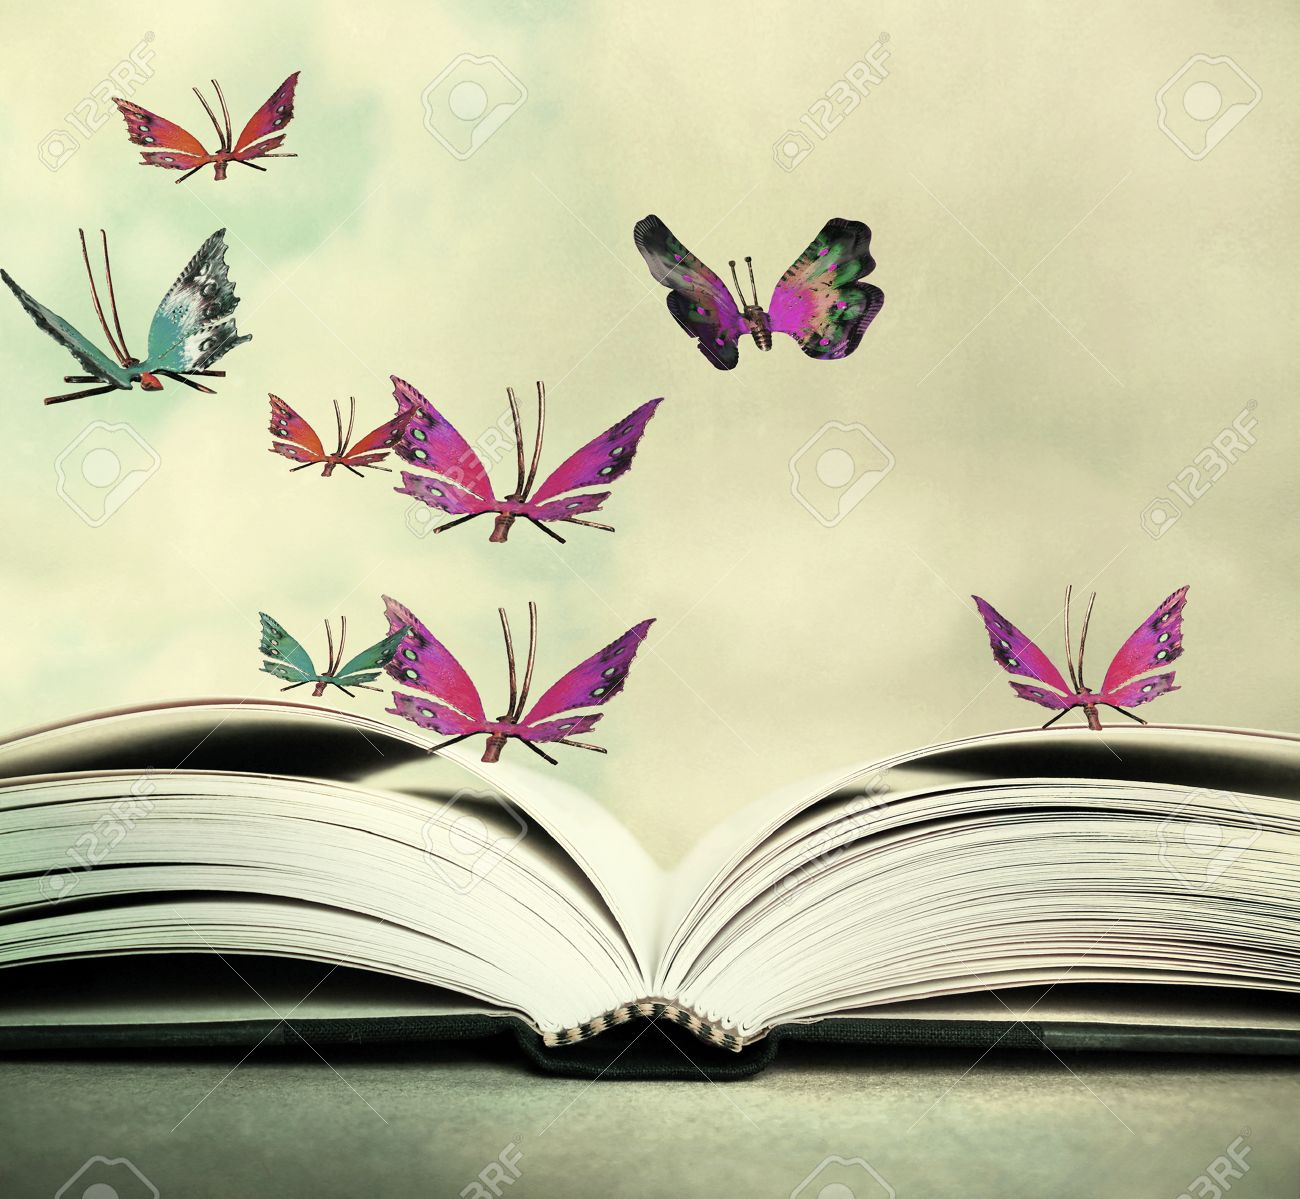 Artistic image of an open book and colorful butterflies that hover in the sky - 59790405